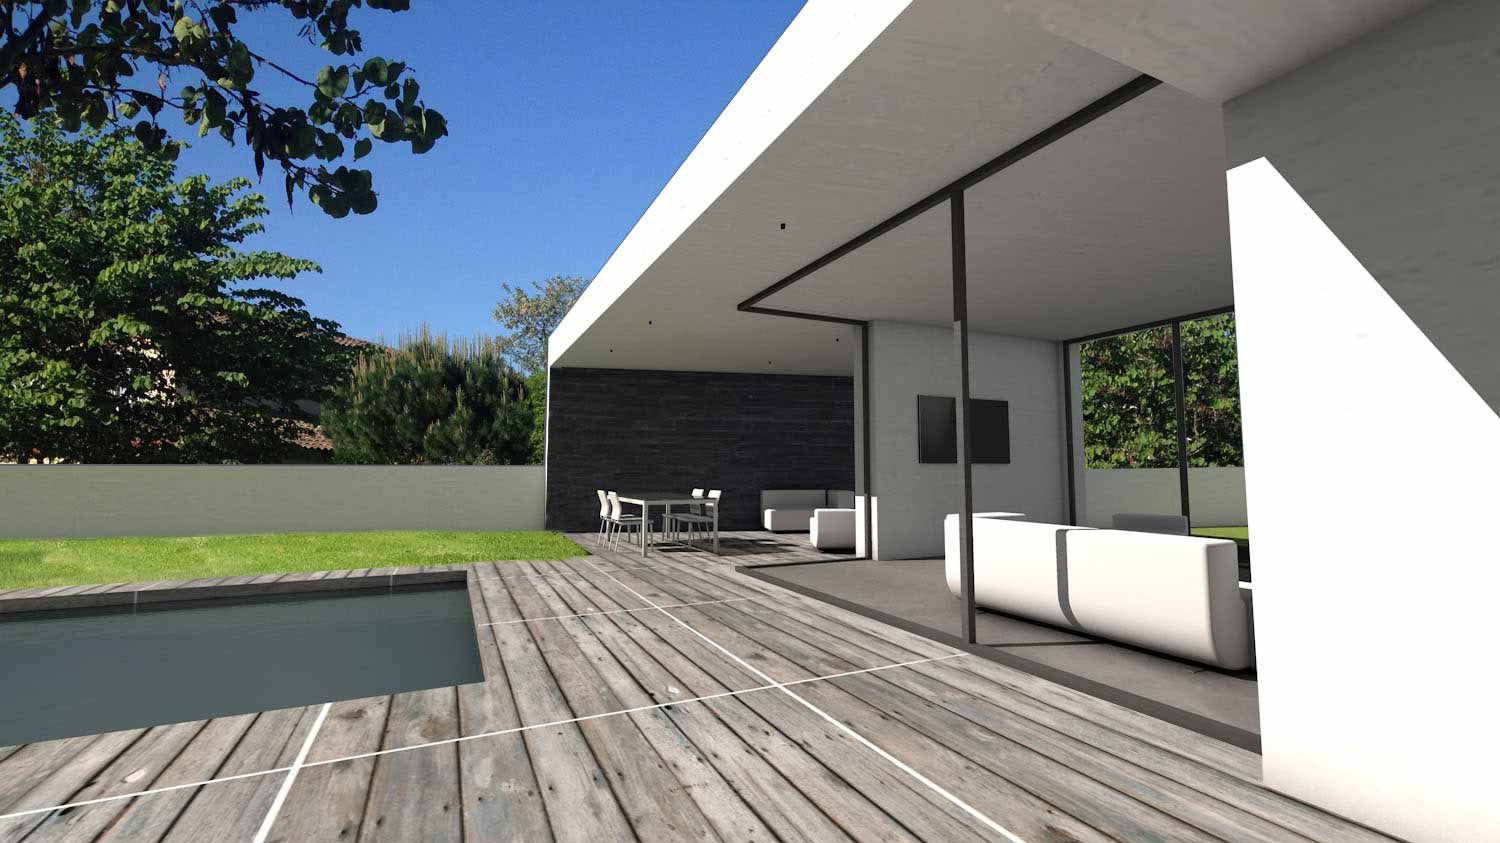 Atelier d 39 architecture sc nario maison contemporaine d for Architecture maison contemporaine